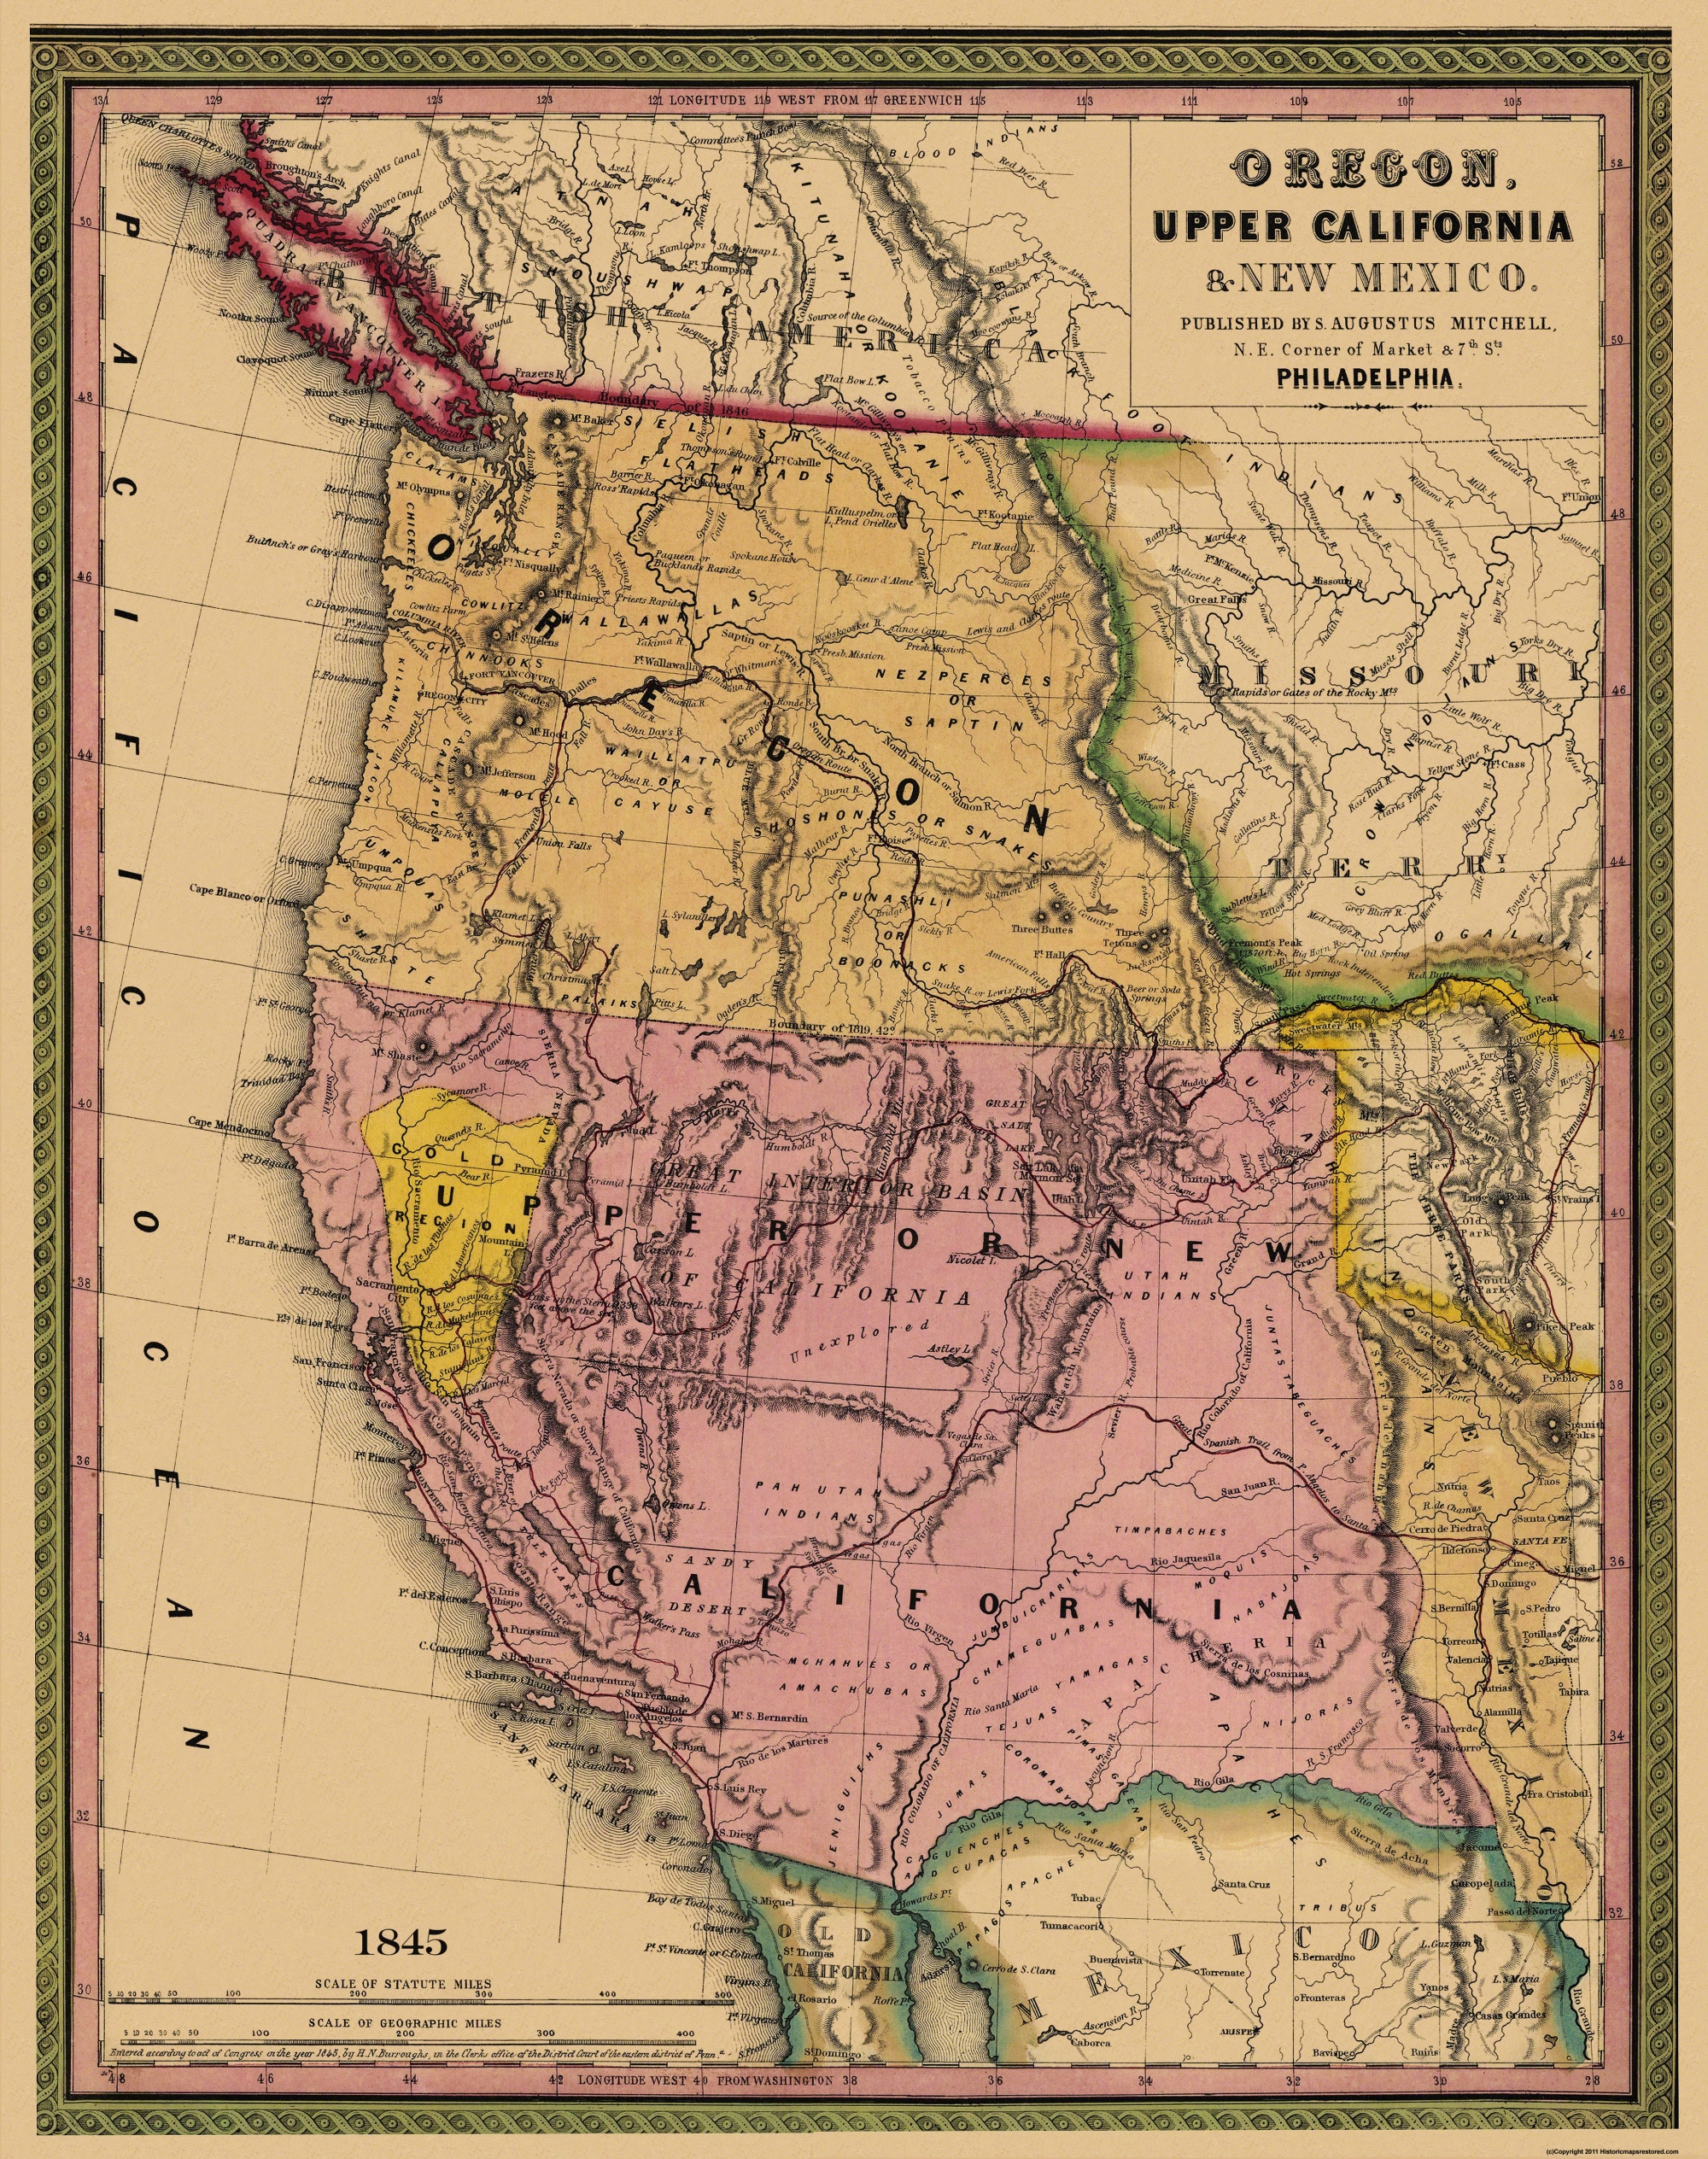 Old State Map Oregon Upper California - 1845 us map